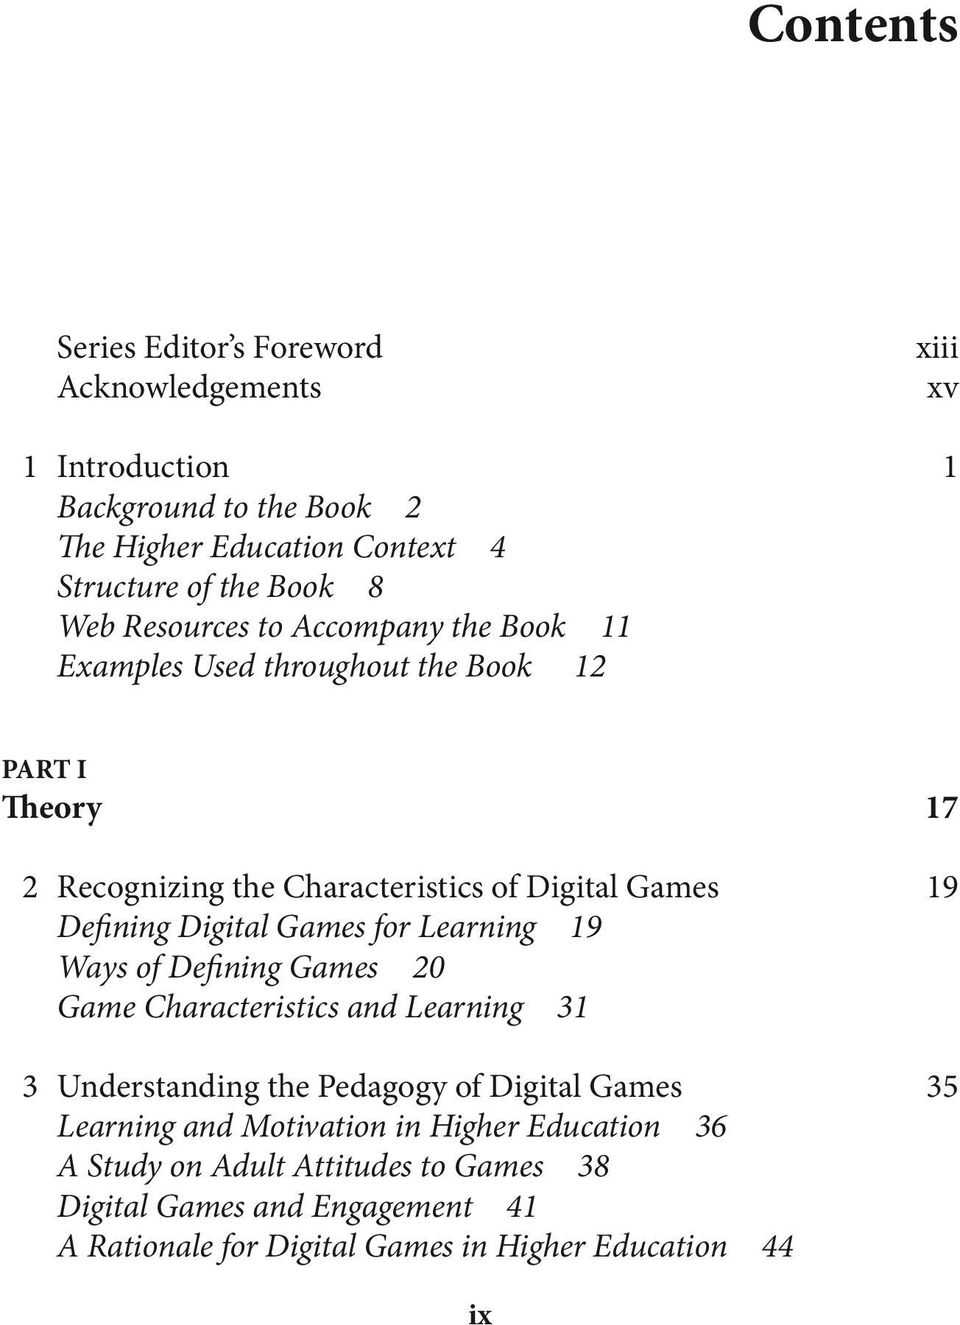 Digital Games for Learning 19 Ways of Defining Games 20 Game Characteristics and Learning 31 3 Understanding the Pedagogy of Digital Games 35 Learning and